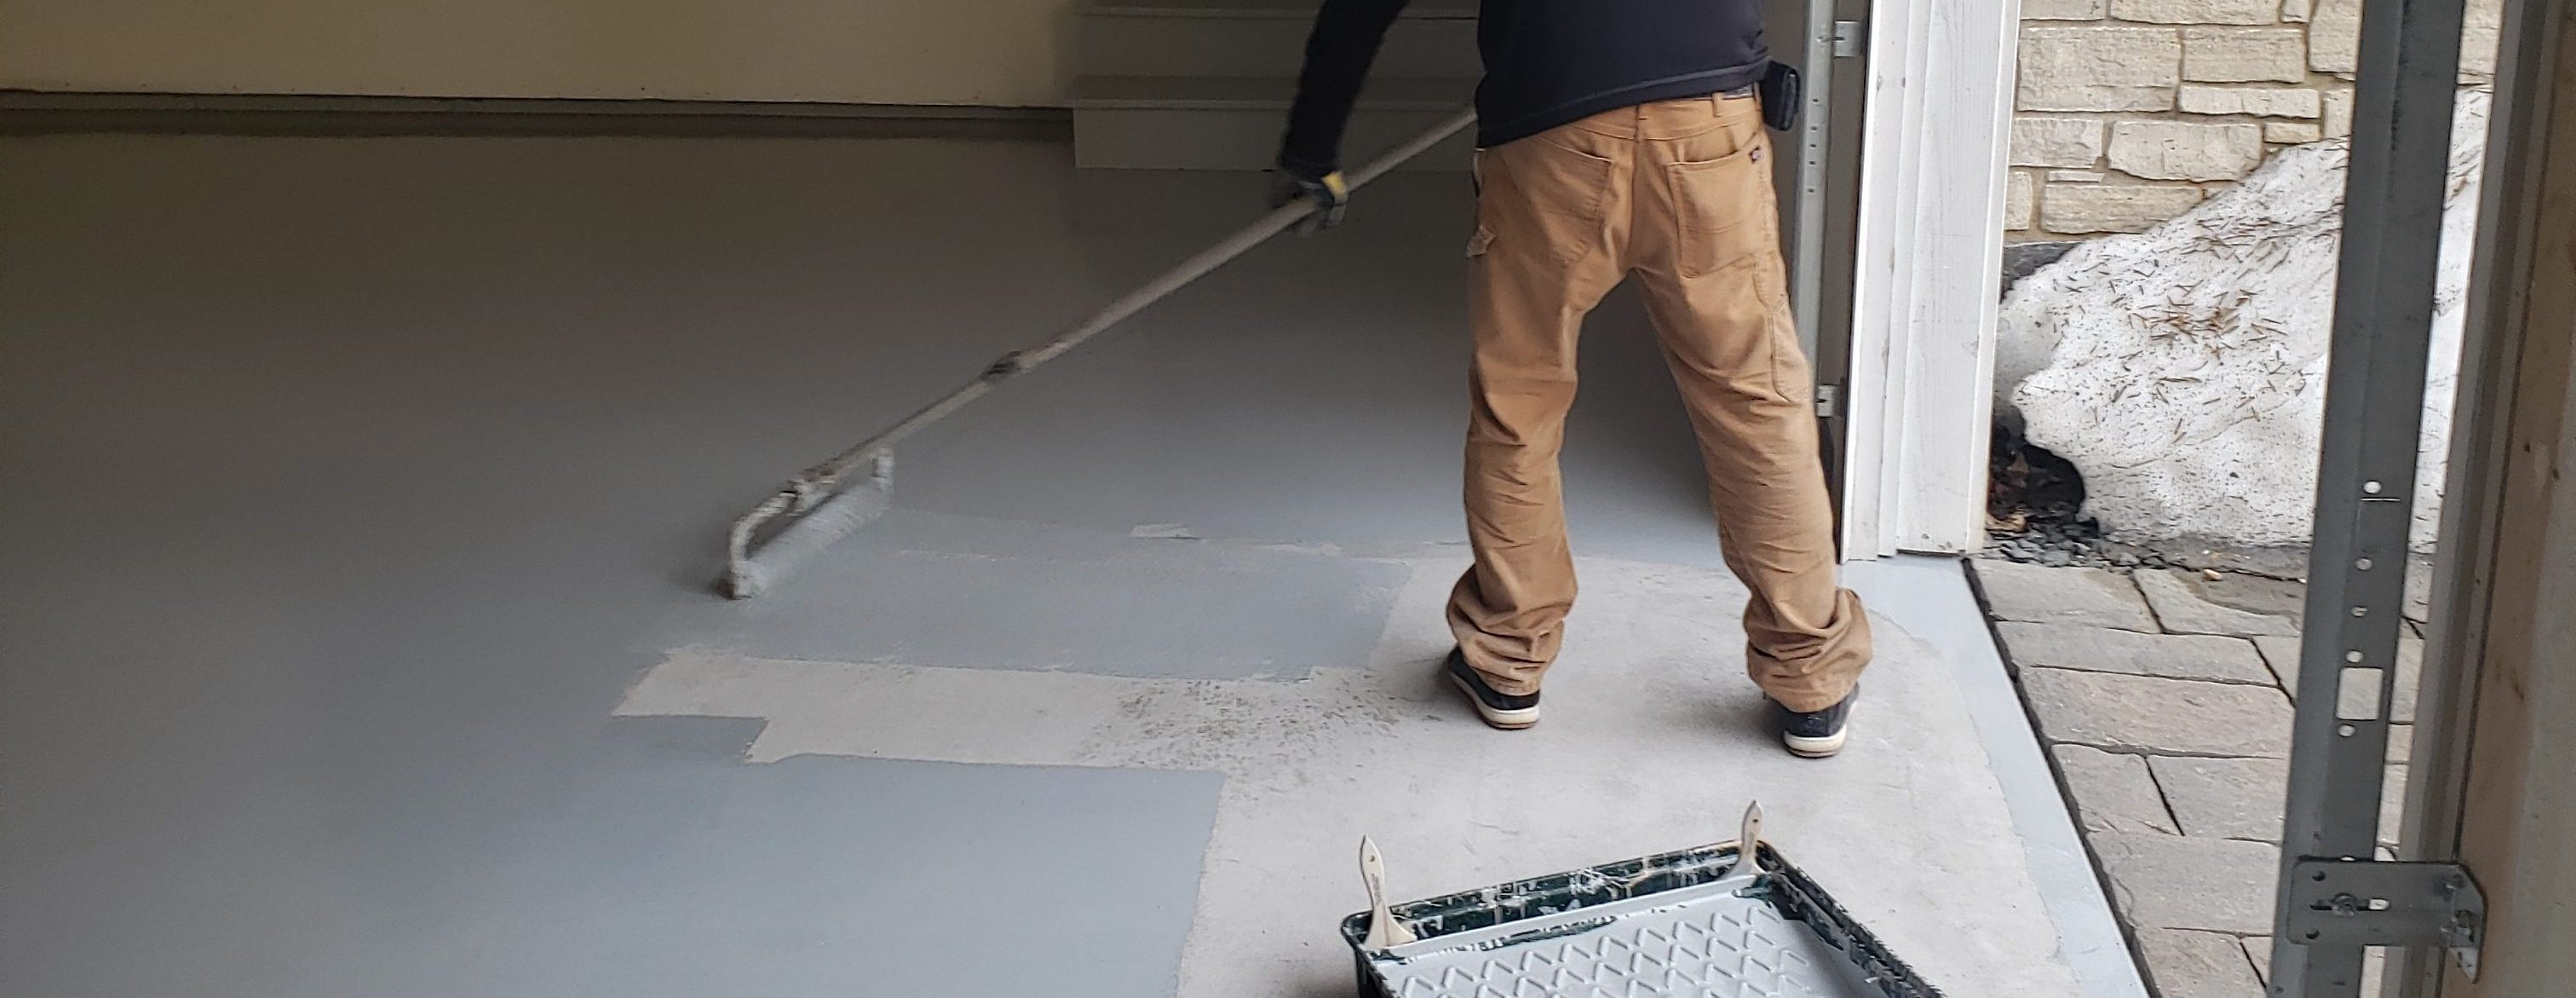 Floor Coating Process